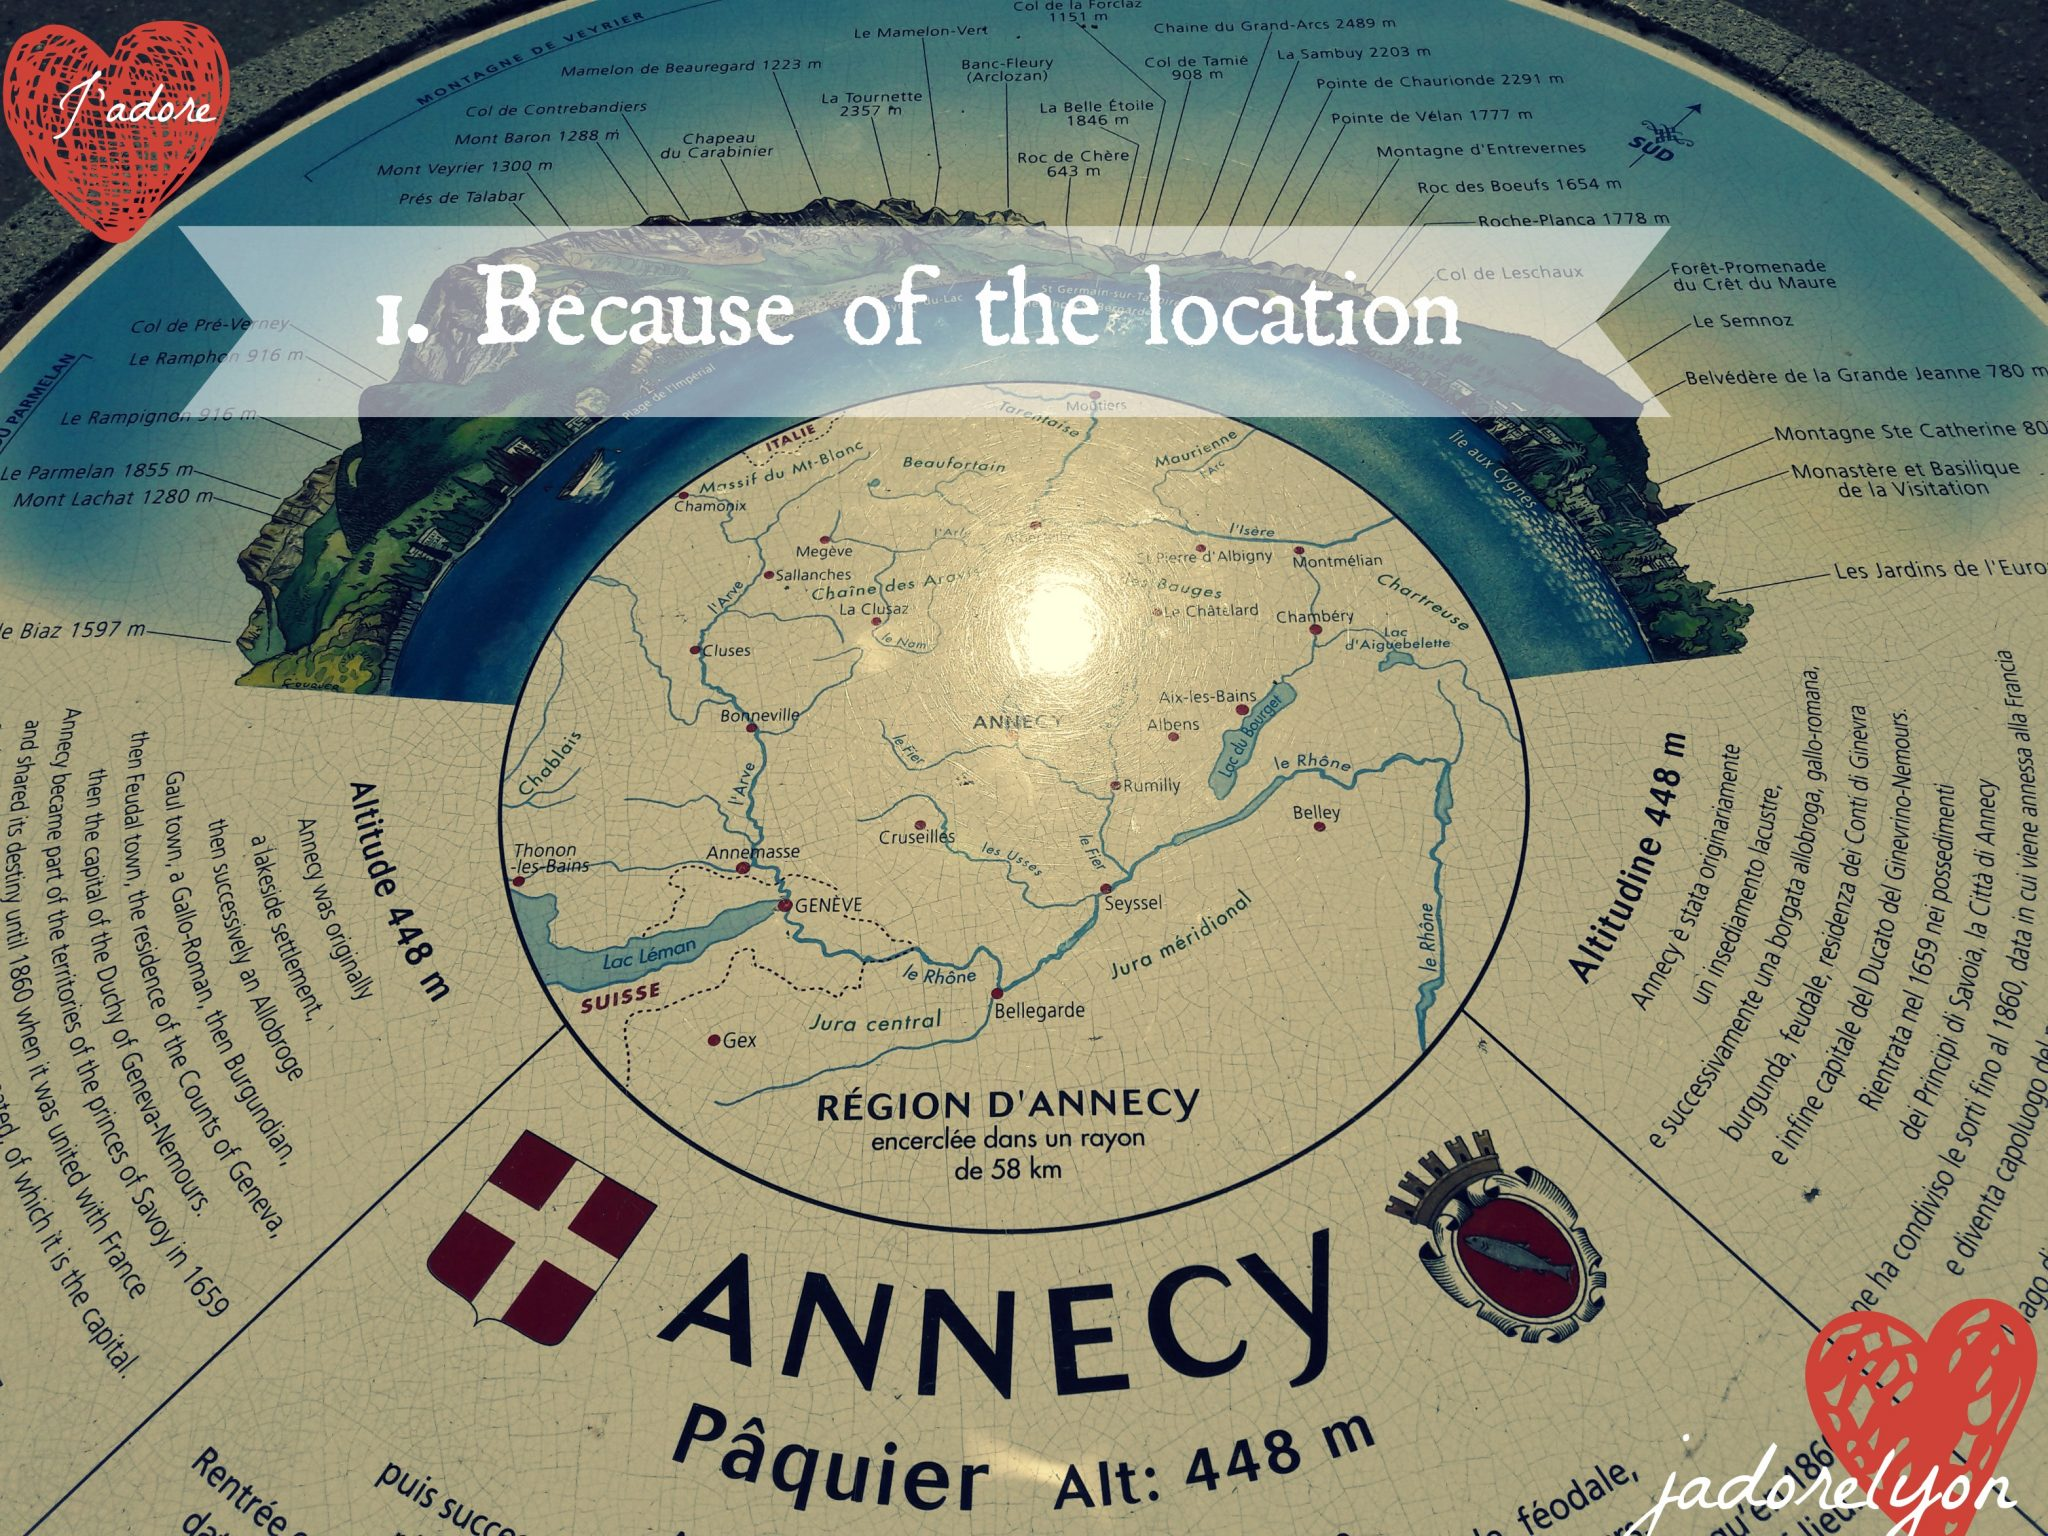 Because of the location to annecy